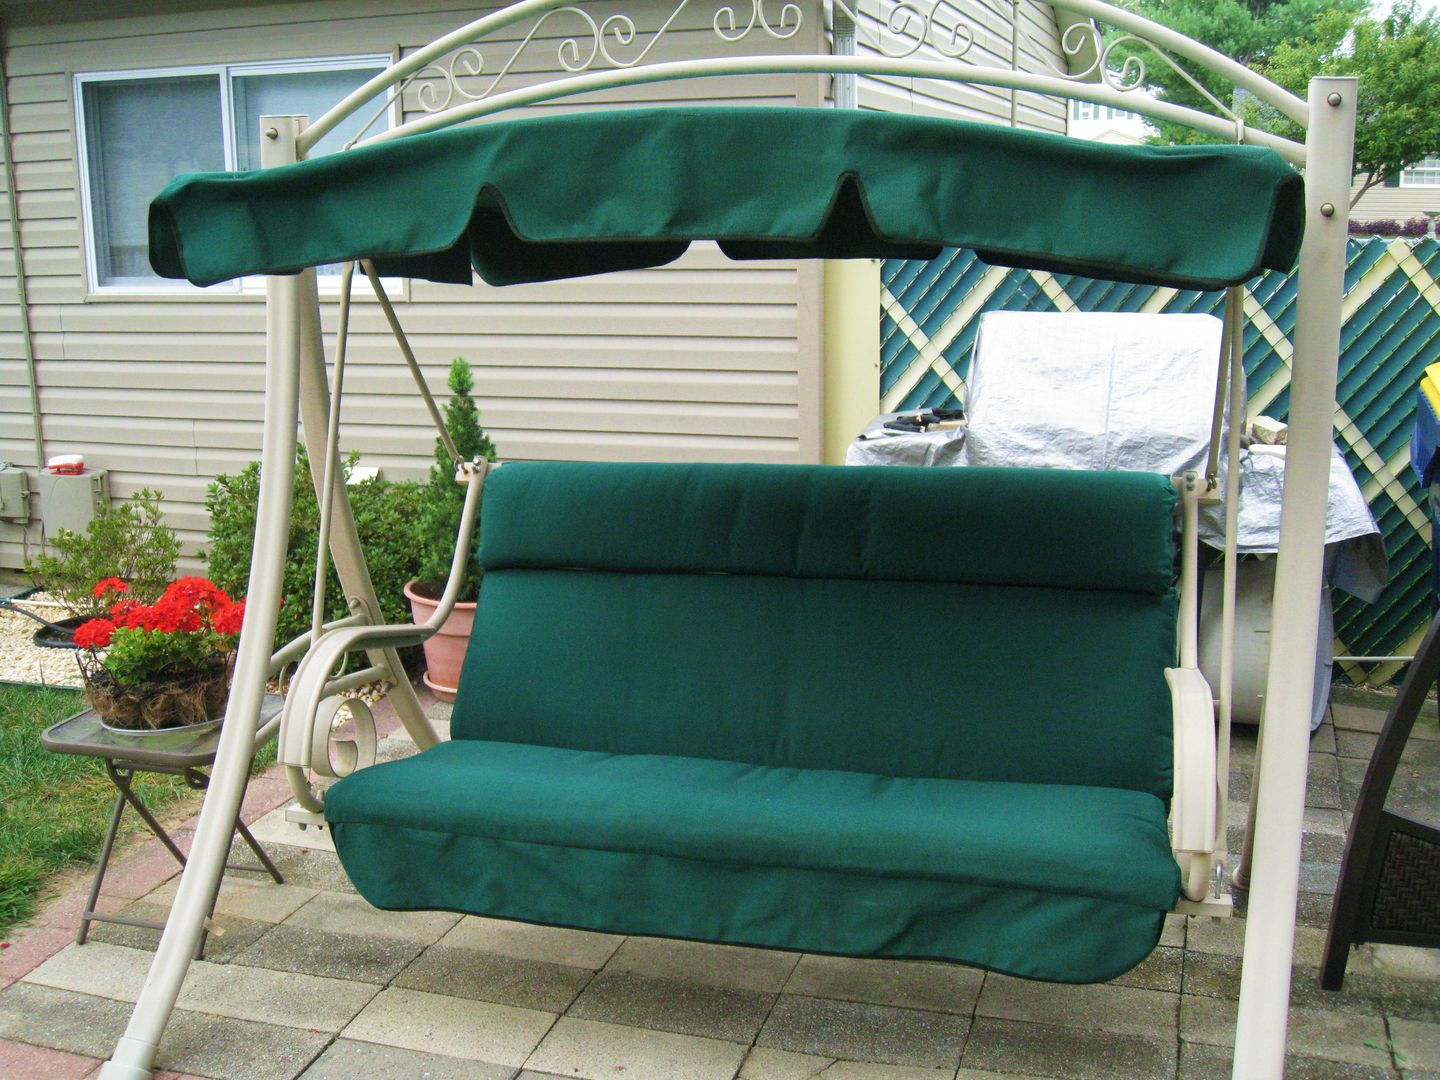 Another Made In Usa Costco Patio Swing Replacement Canopy And Cushion Beautiful Durable Sunbrella Fabric Hemlock Tweed